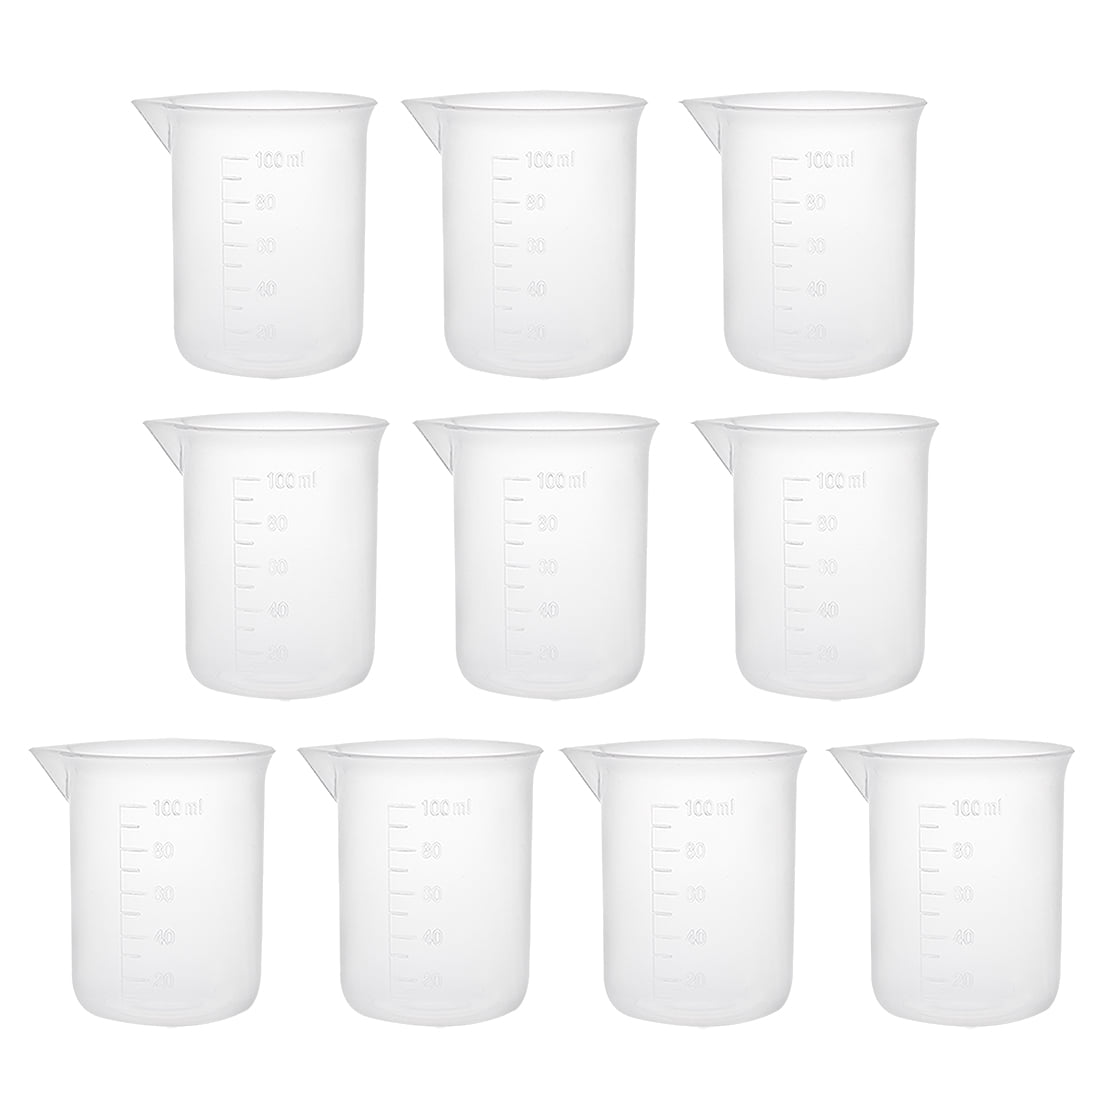 10pcs Measuring Cup Labs PP Graduated Beakers 100ml by Unique-Bargains